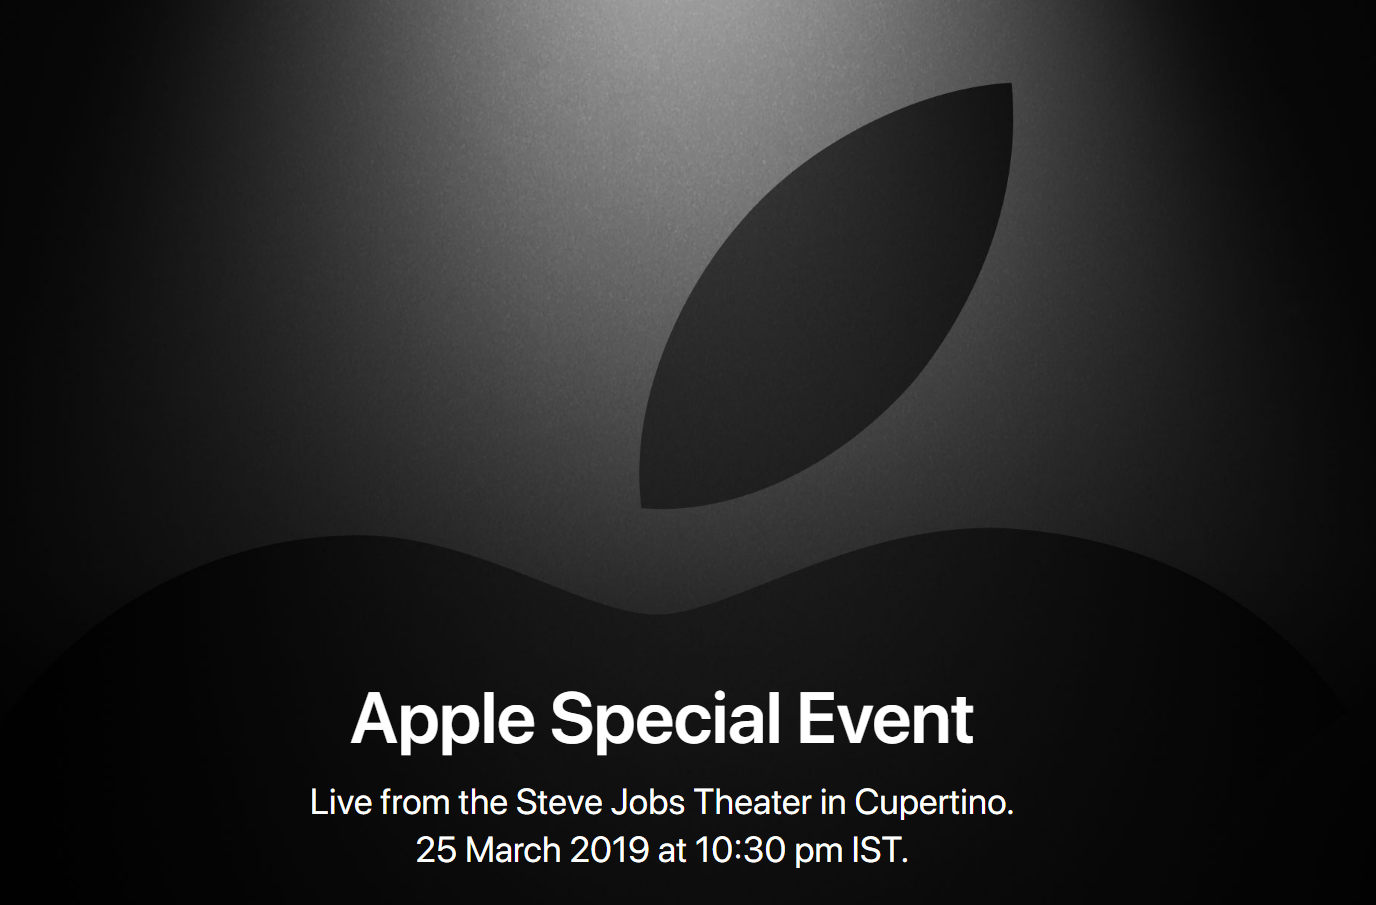 Apple Special Event (Event for Apple Services) - Dinesh Kachhot - Medium